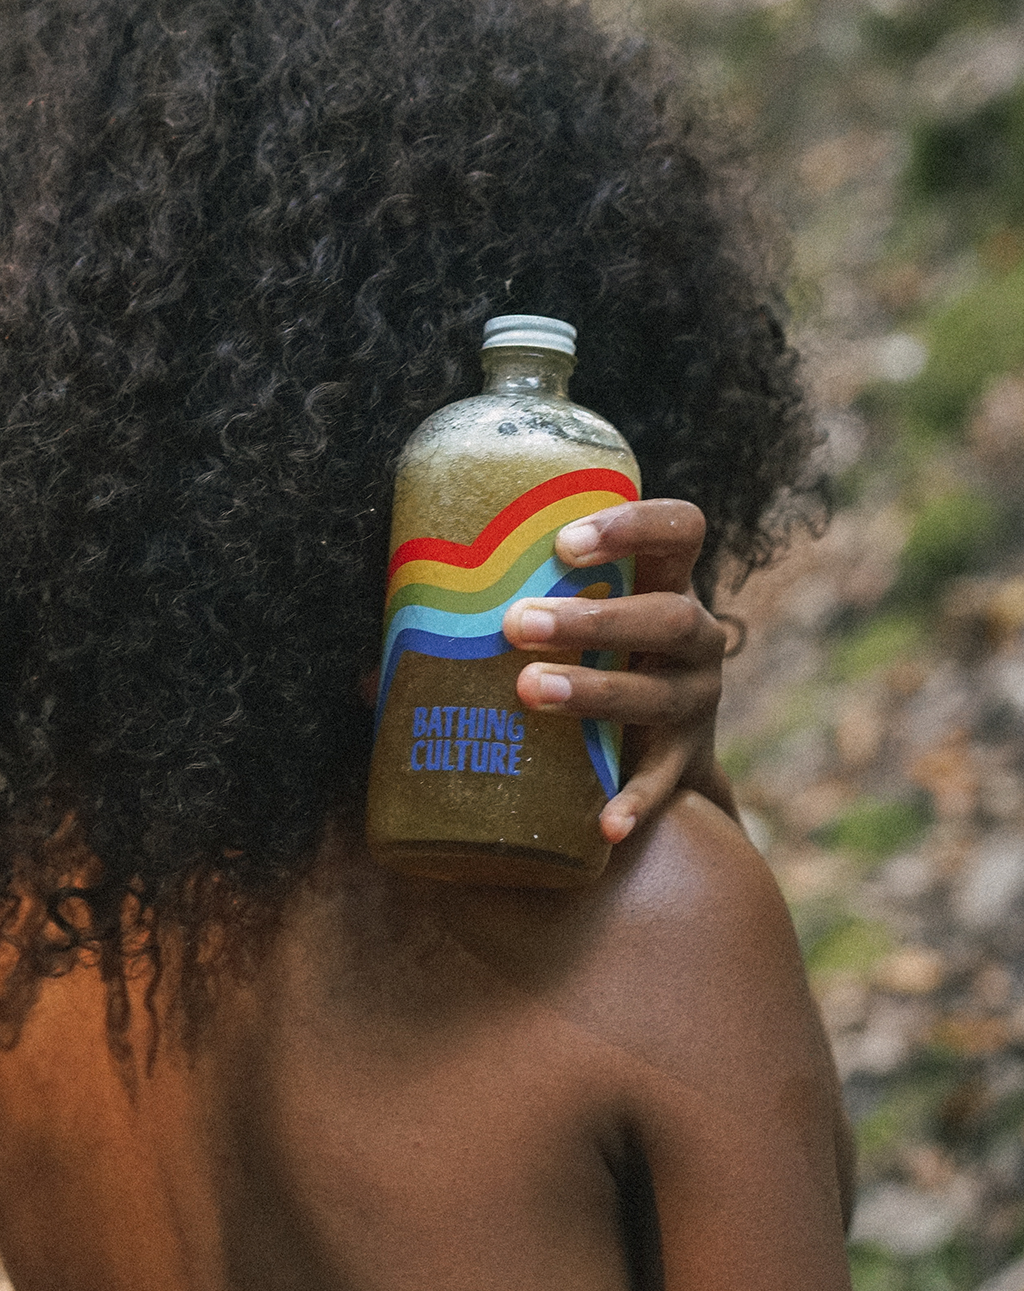 a model holding the glass bottle of soap with a rainbow logo